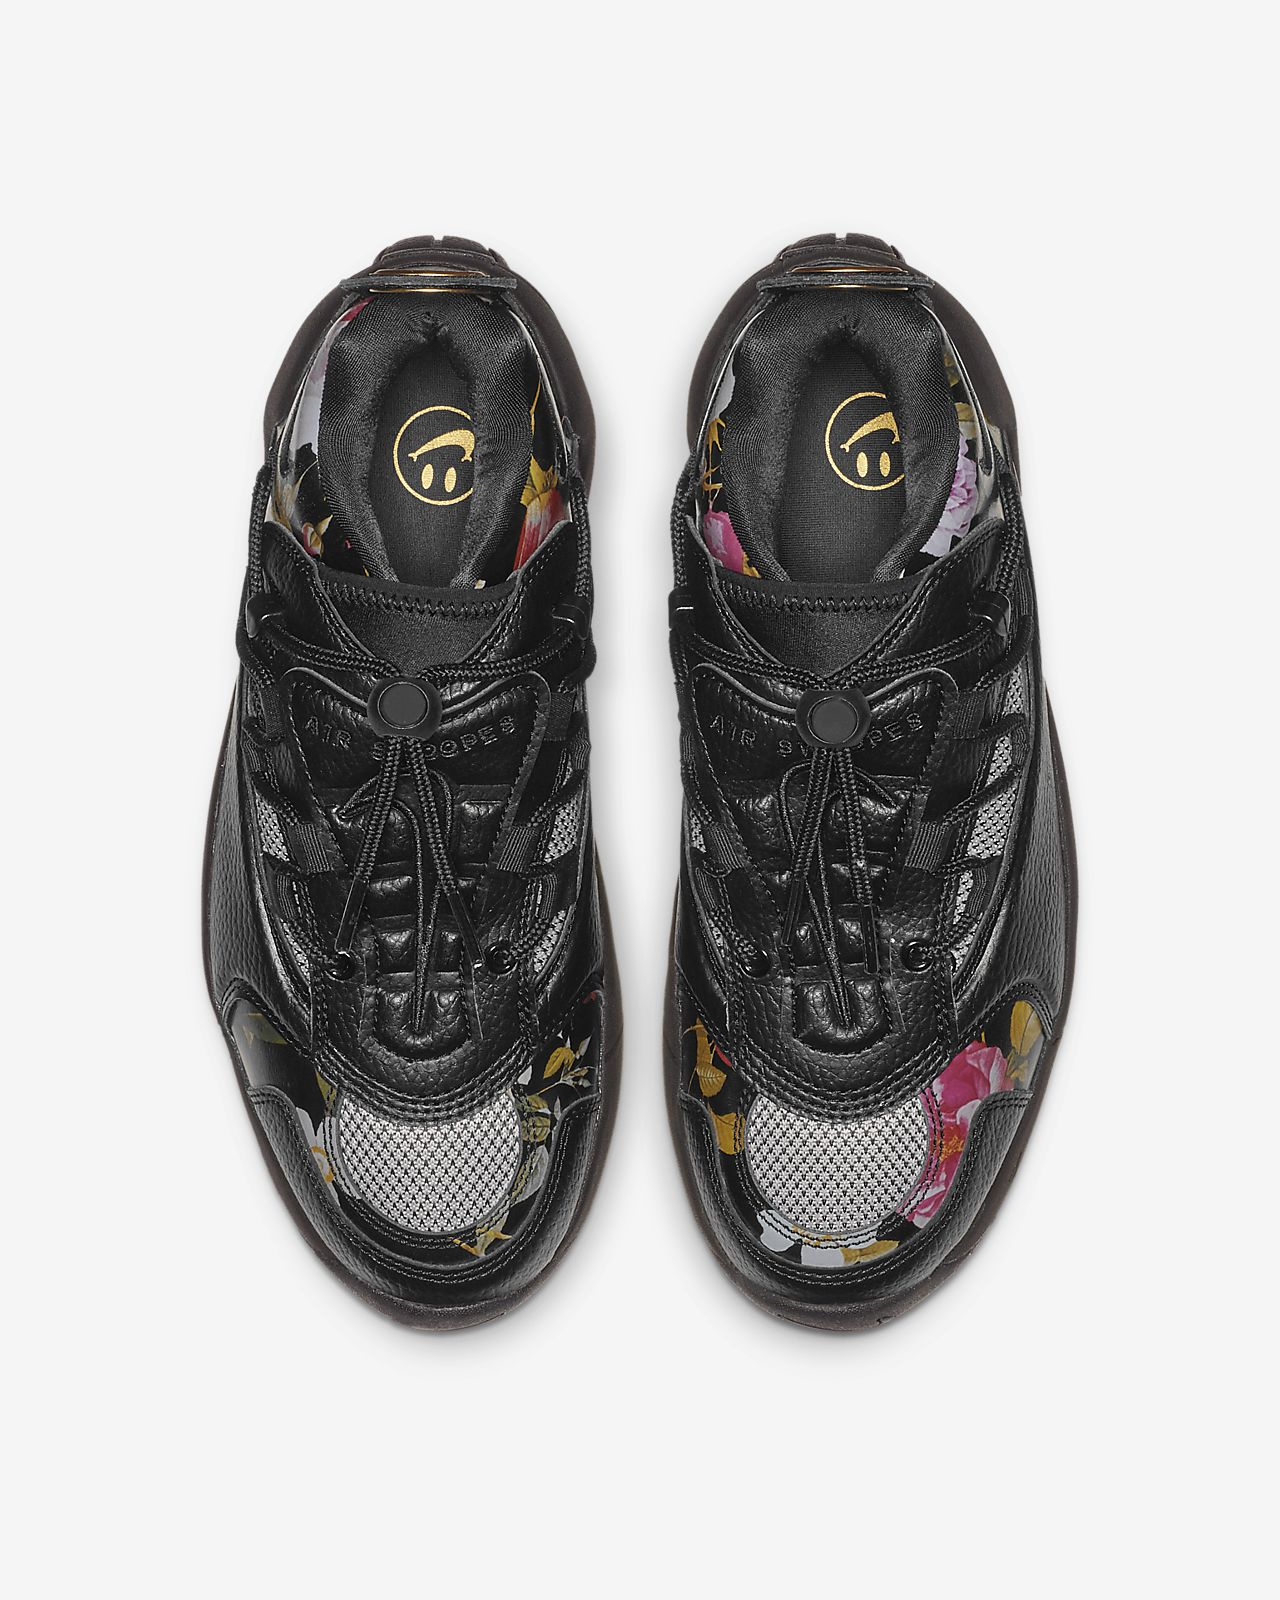 0d7220bba52 Nike Air Swoopes 2 Floral Shoe. Nike.com